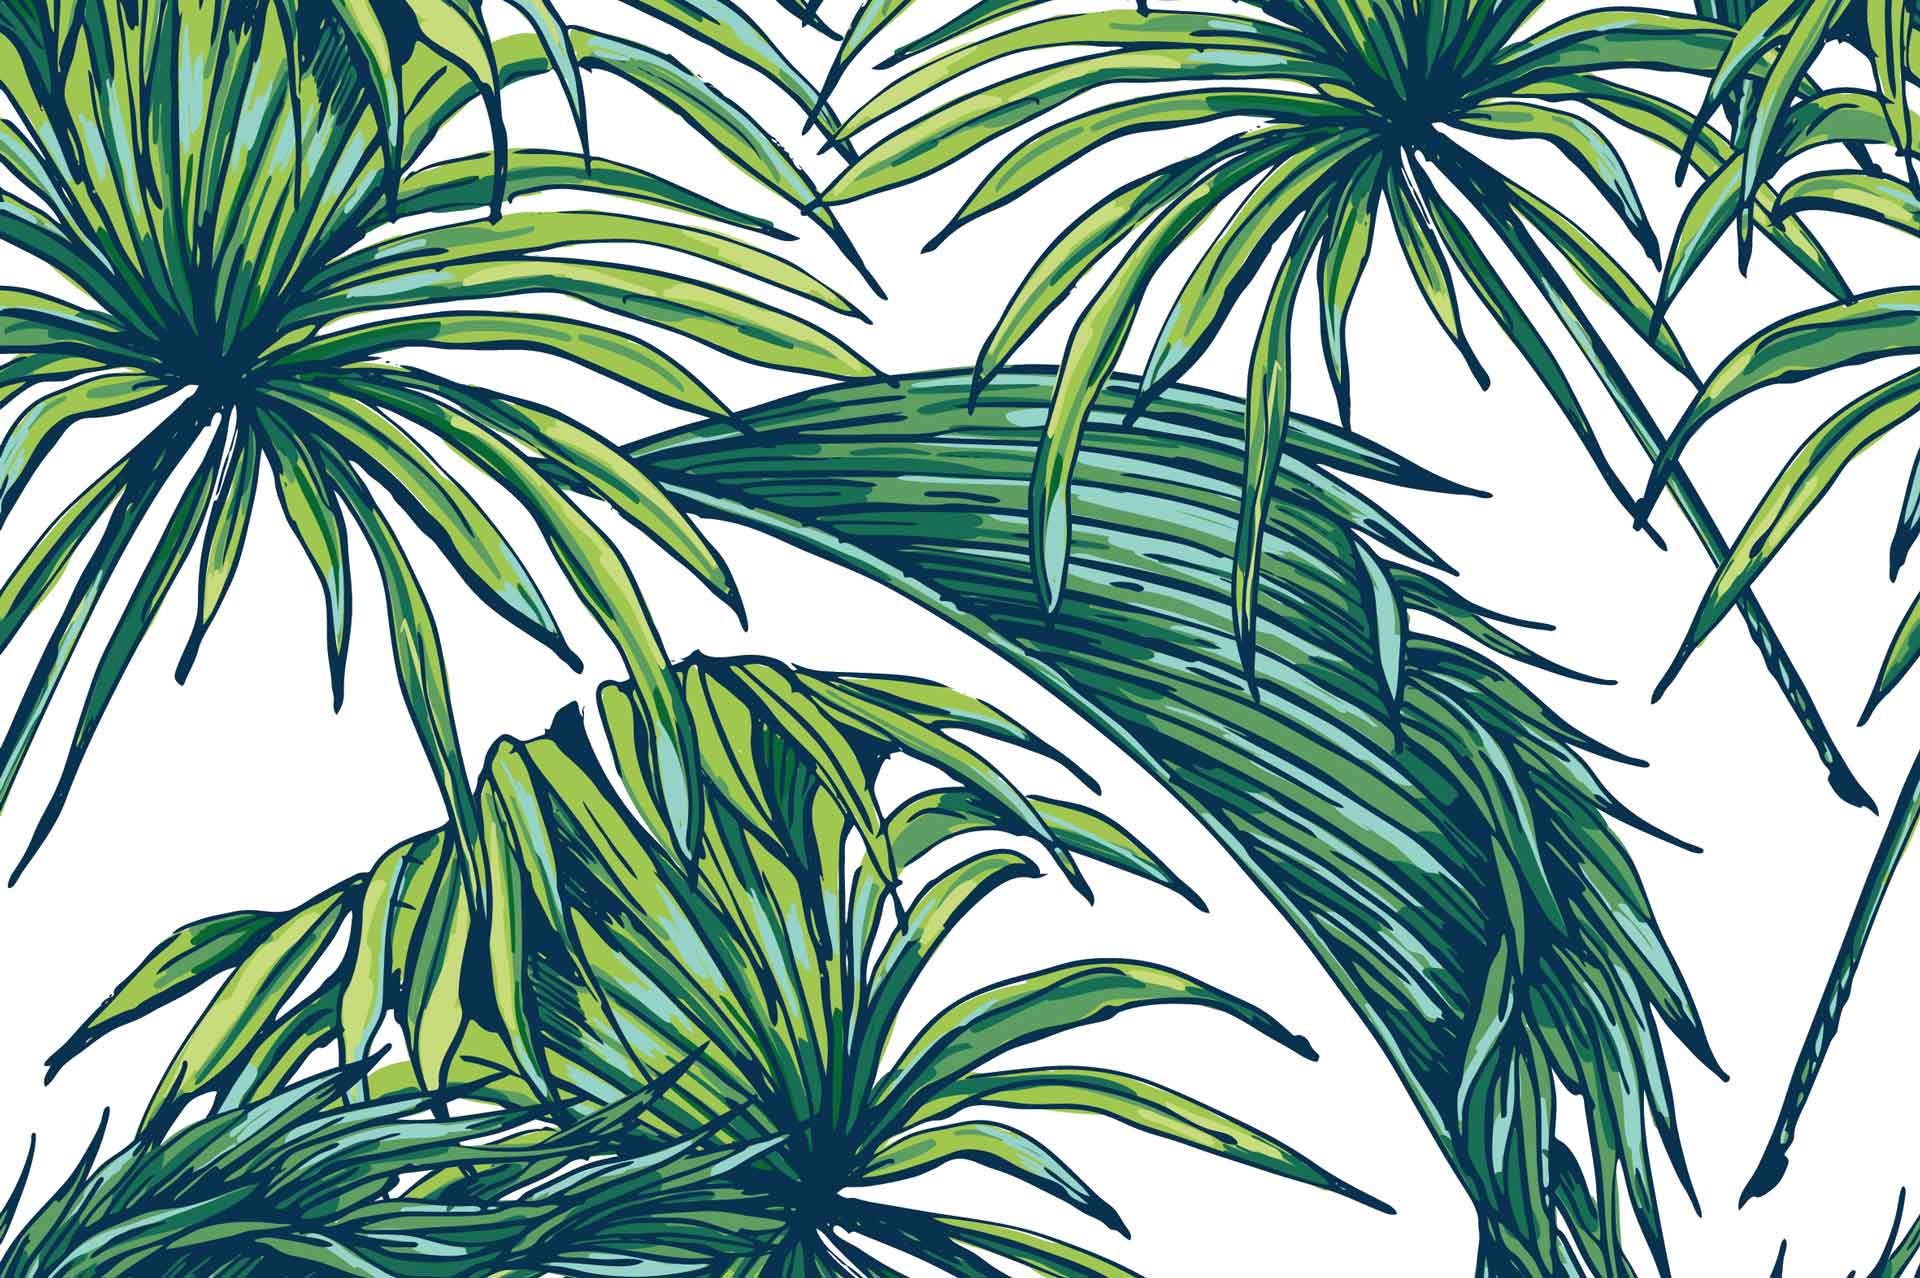 Carasaven Greenpalmleaves Wallpaper Palm Leaves Wallpaper Hd 481947 Hd Wallpaper Backgrounds Download We have a massive amount of hd images that will make your. palm leaves wallpaper hd